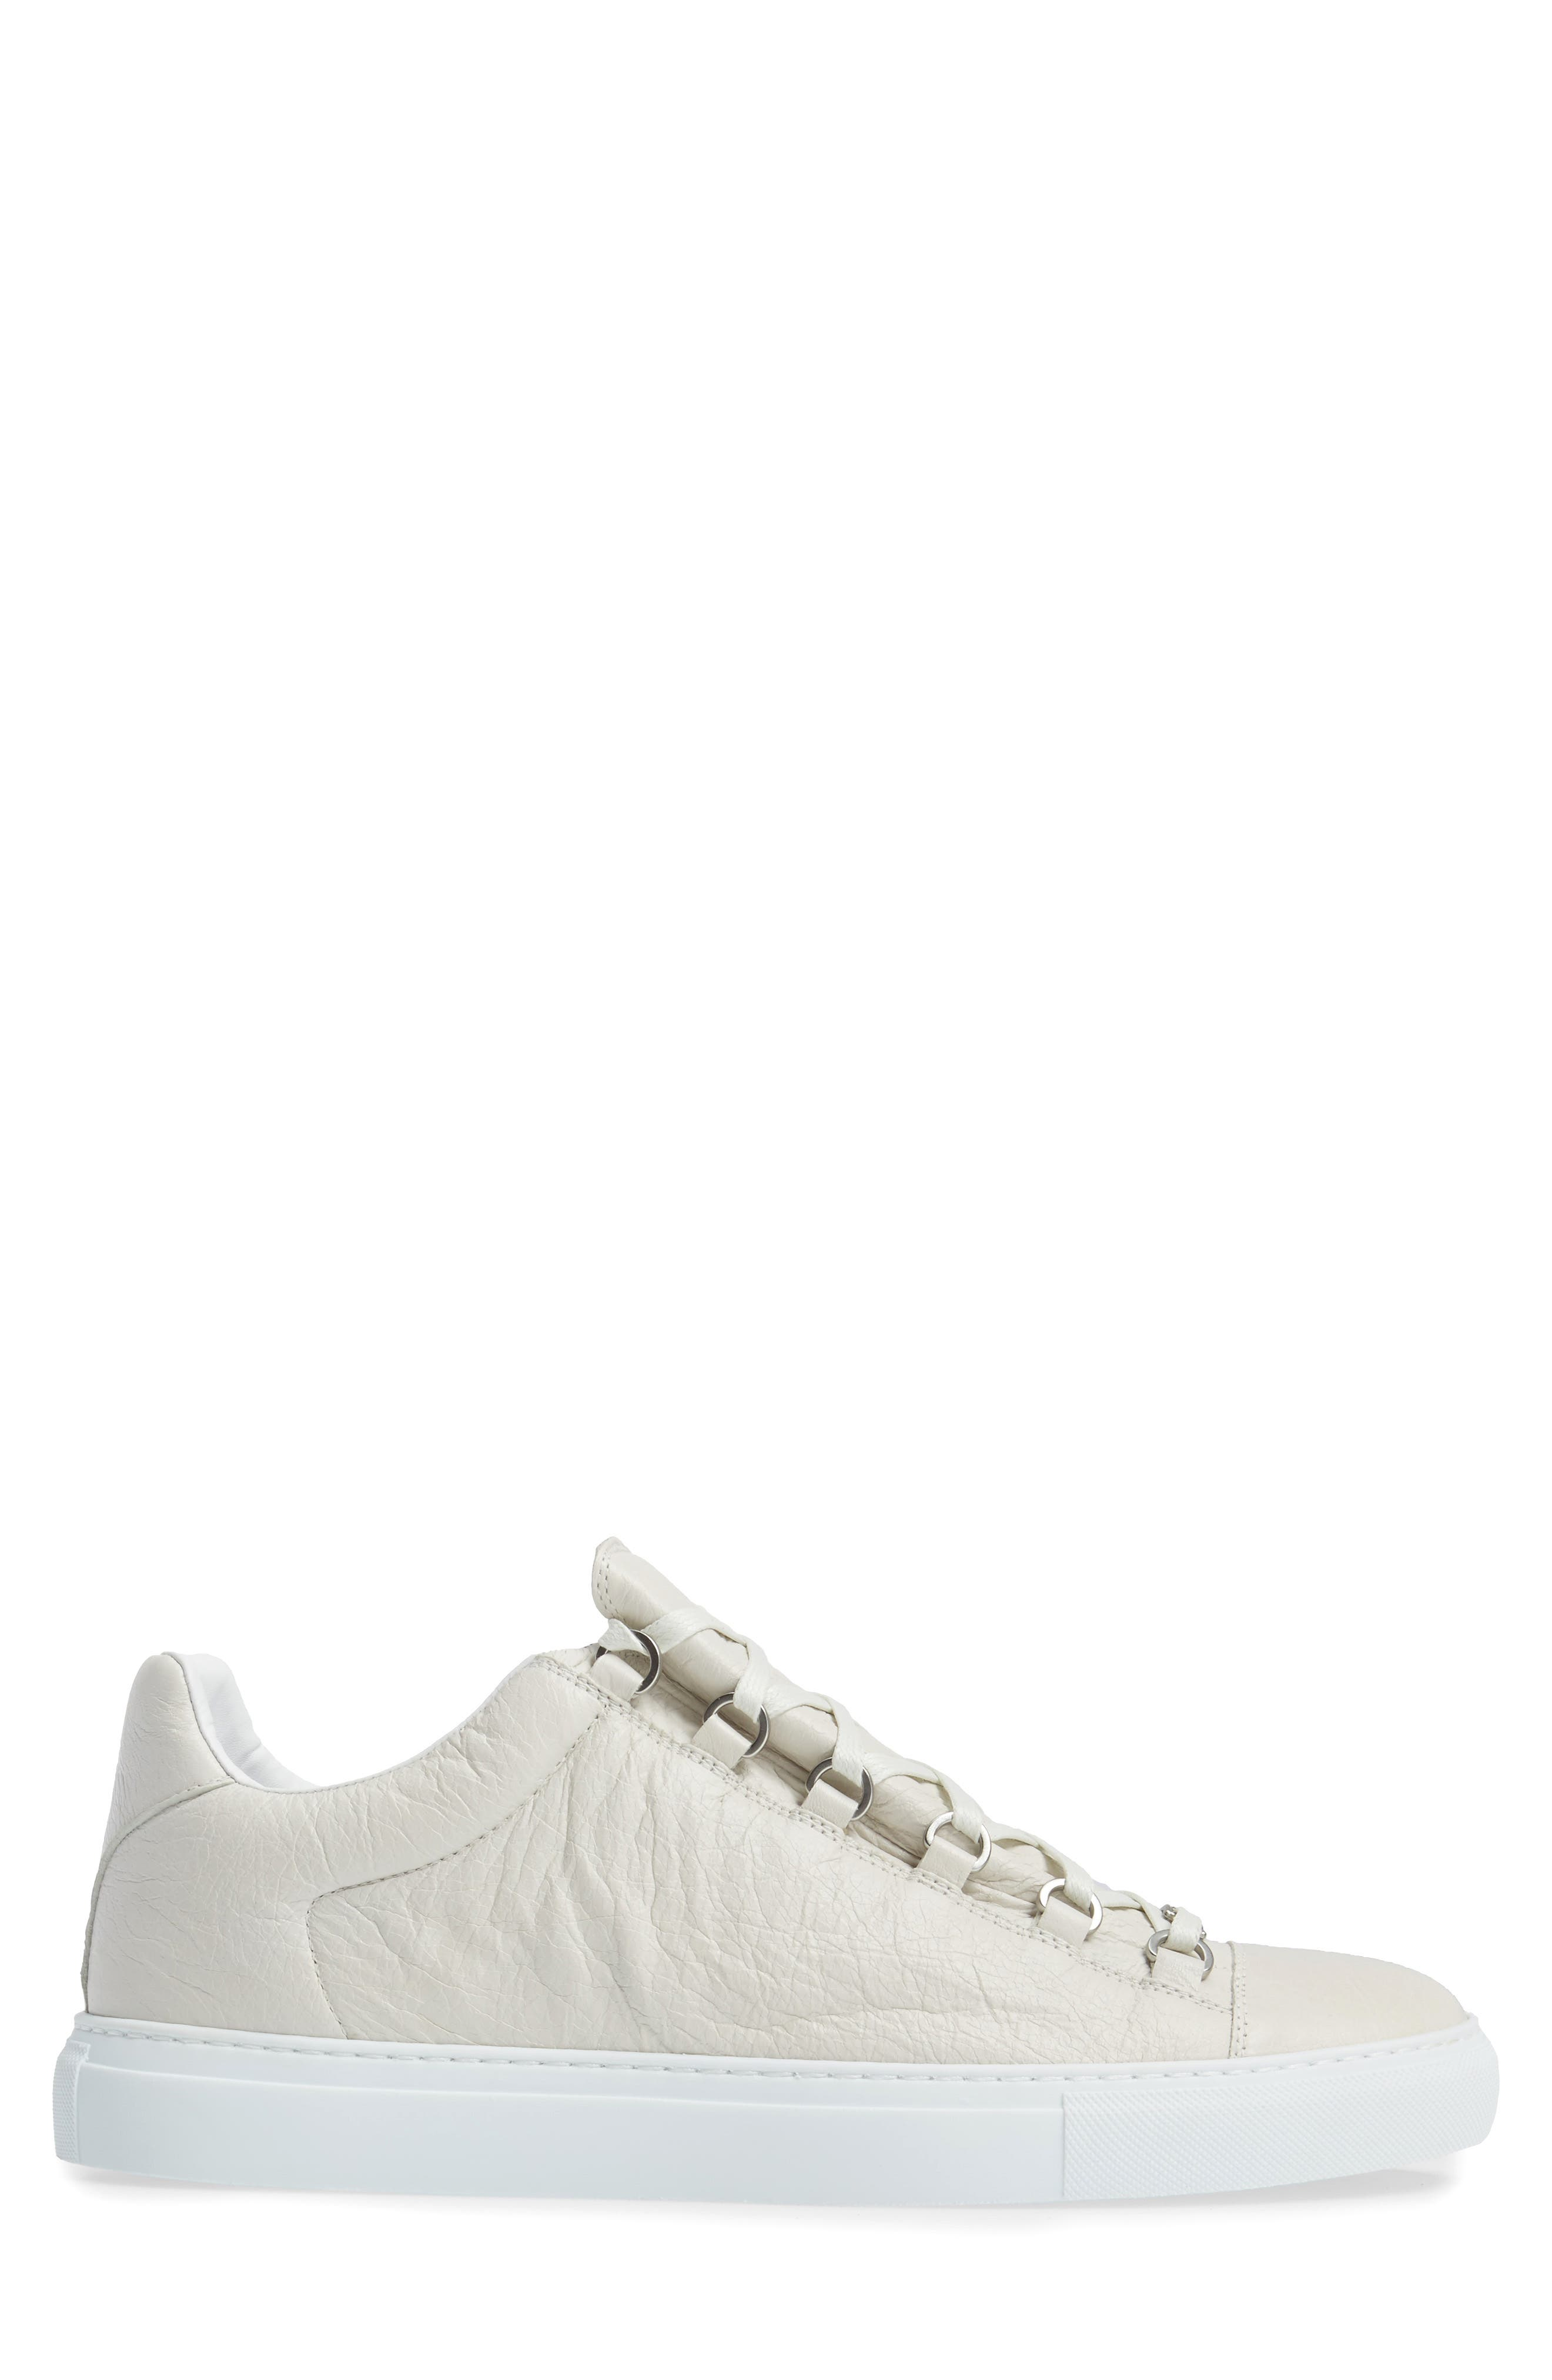 Arena Low Sneaker,                             Alternate thumbnail 3, color,                             Extra Blanc Leather